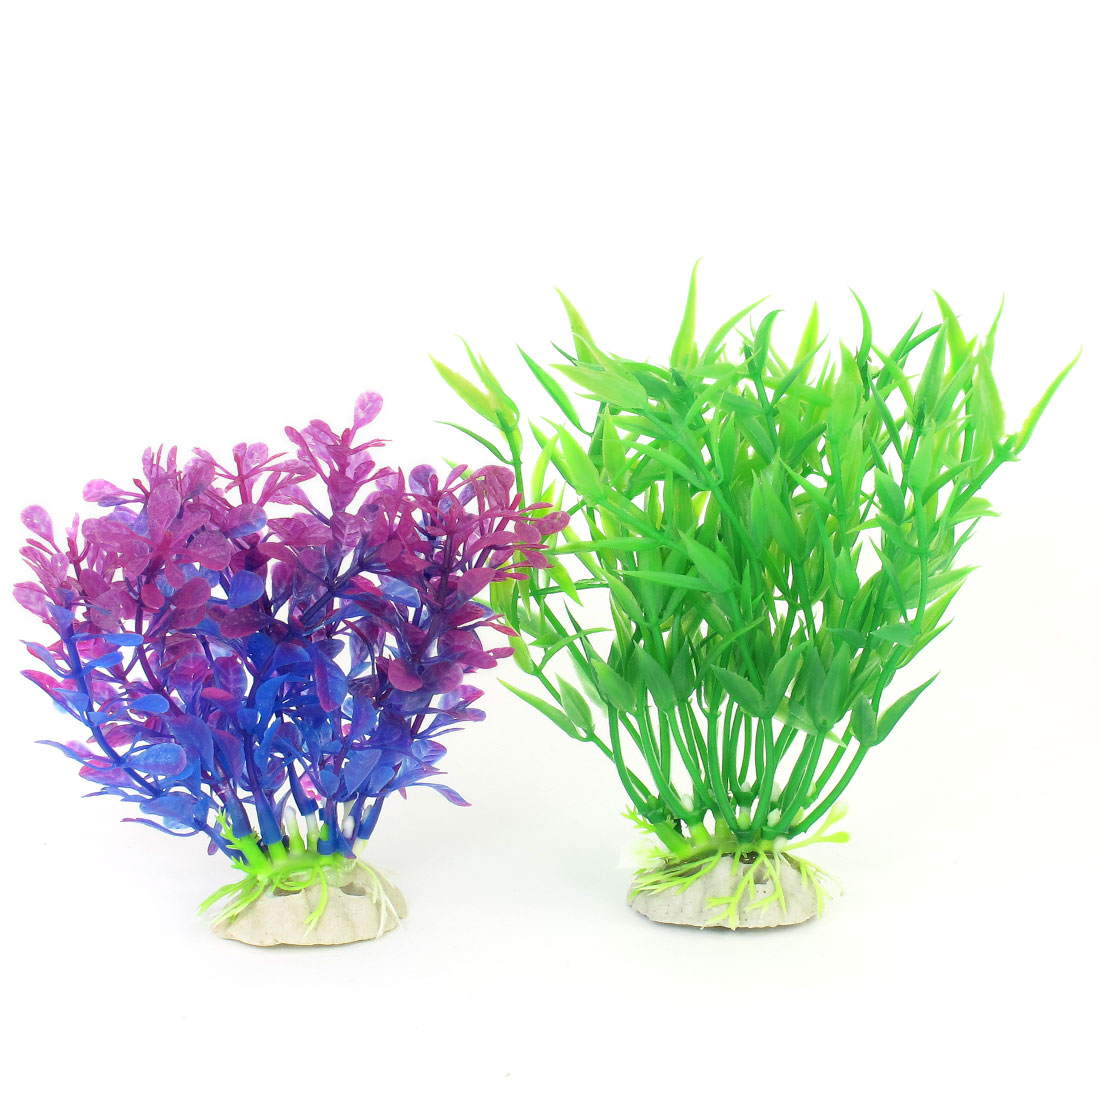 Green Fuchsia Blue Simulation Aquascaping Aquatic Underwater Plant 2 Pcs